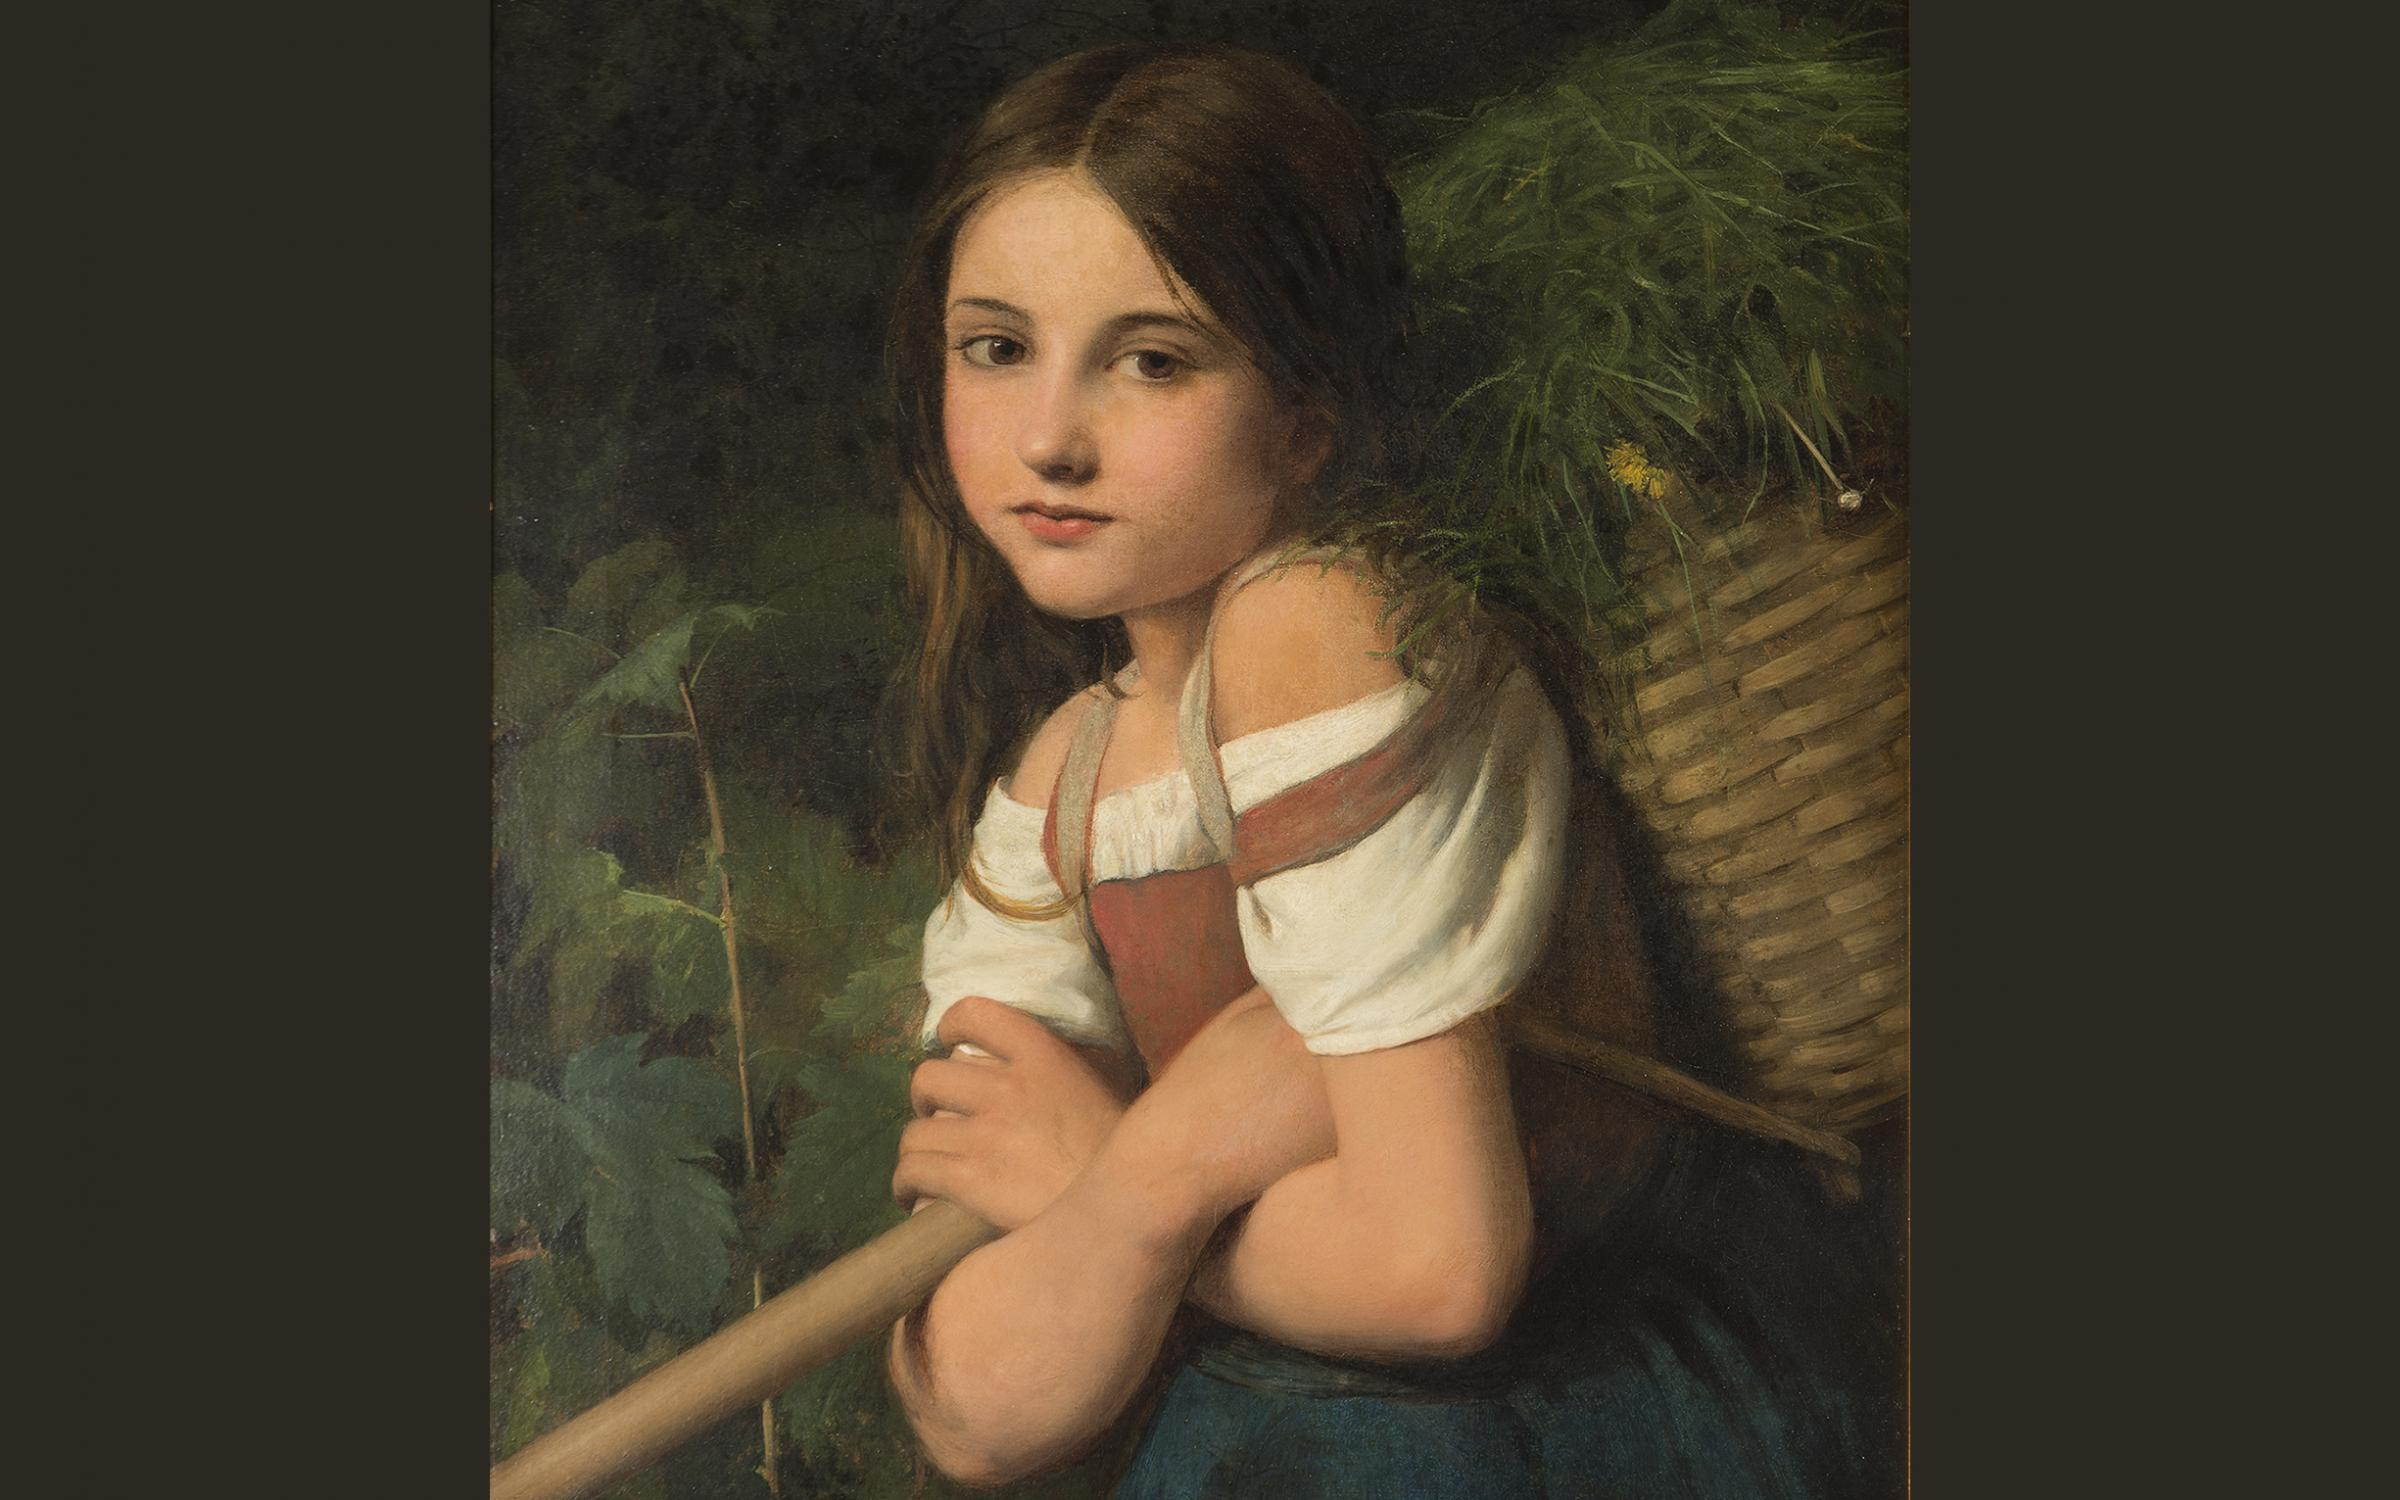 William Charles Thomas Dobson, (British, 1817-1898), The Fern Gatherer, 1865, oil on canvas, 23 1/2 x 19 7/8 in., gift of John Pilcher, UMFA2017.6.6